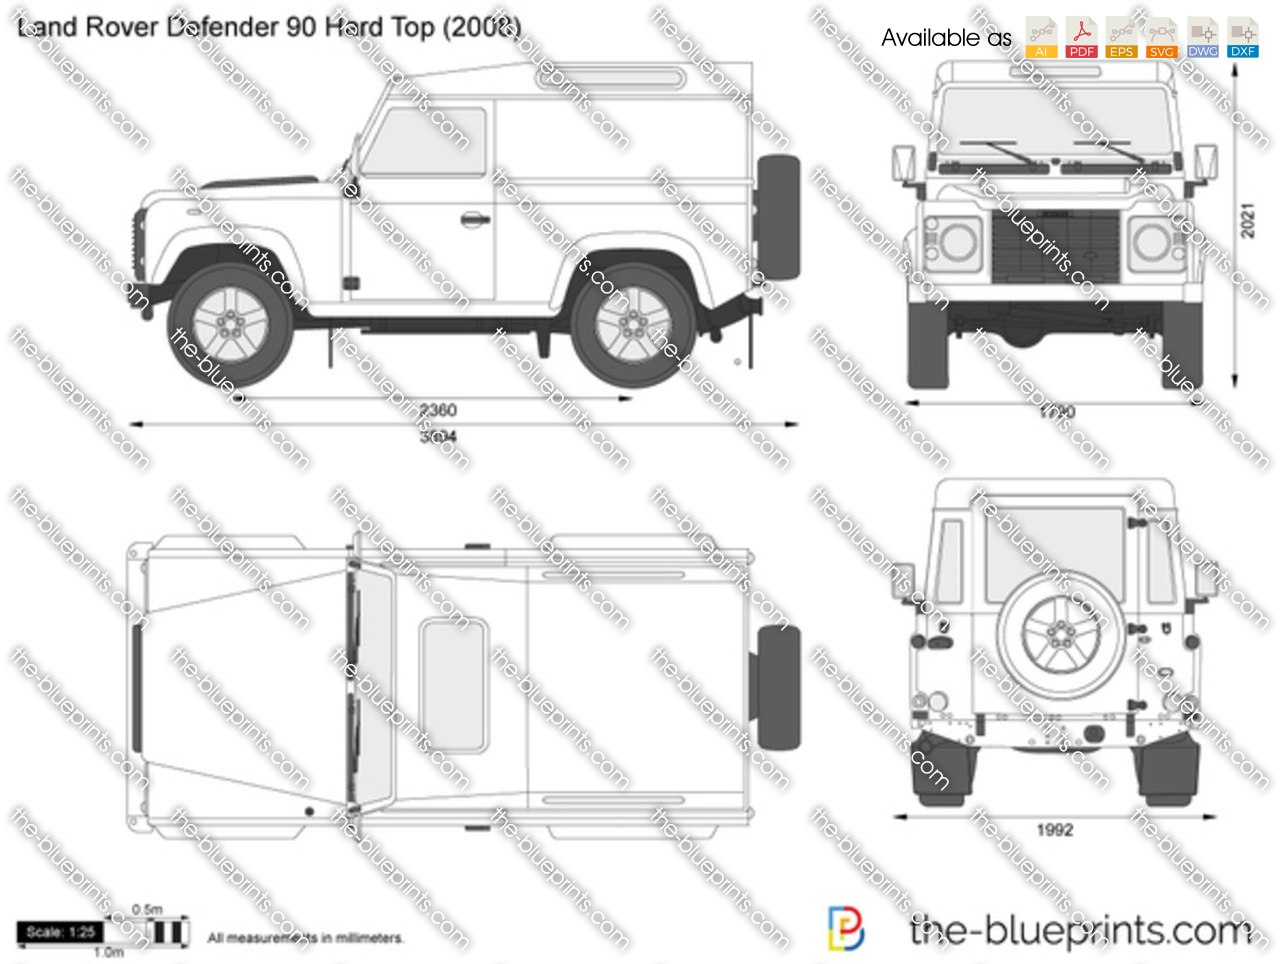 Land Rover Defender 90 Hard Top 2012